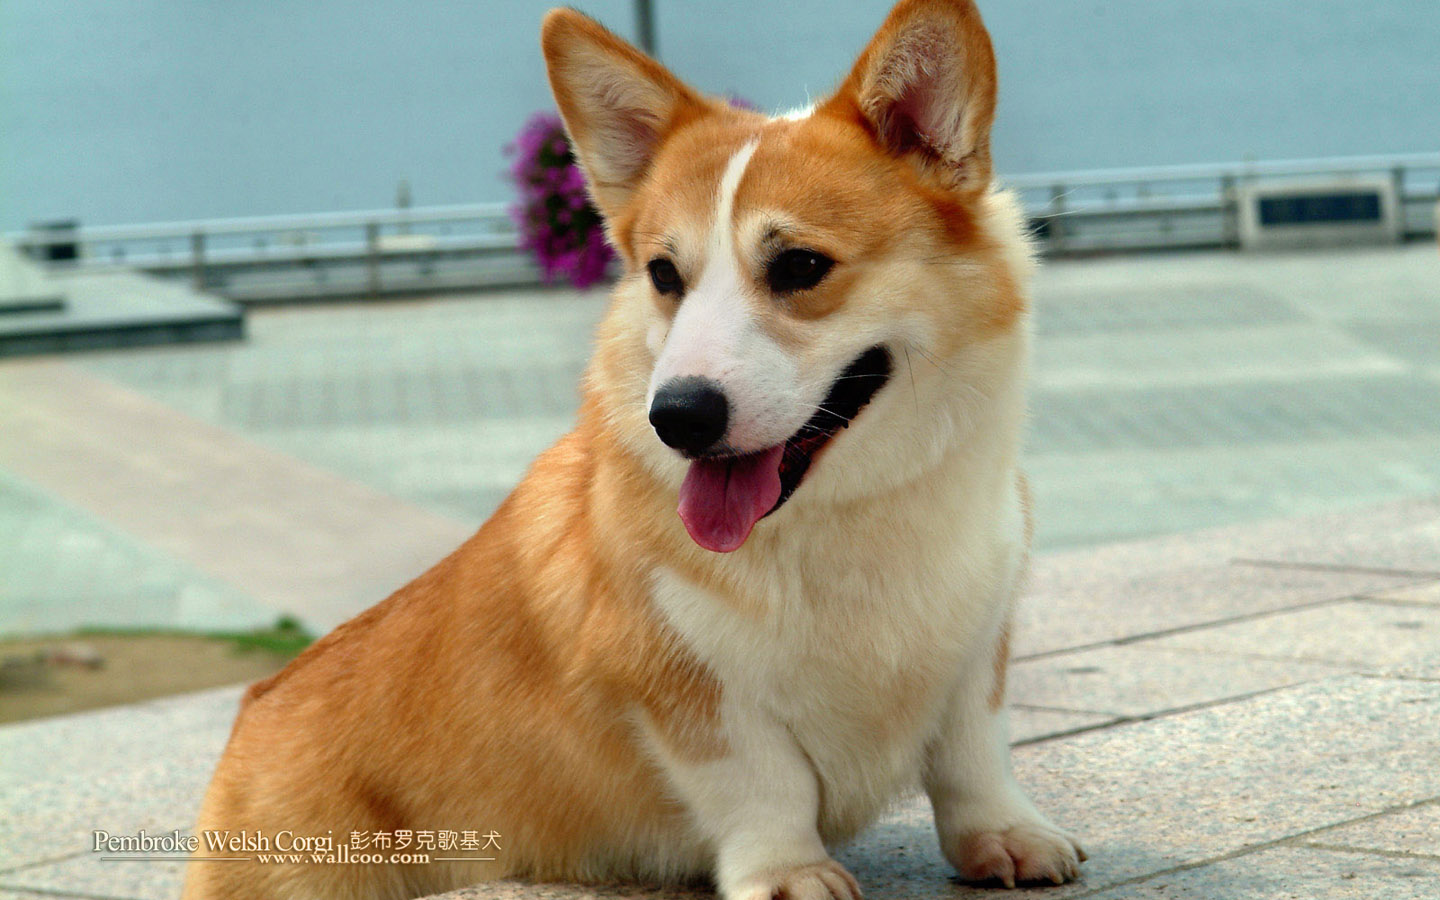 Pembroke Welsh Corgi dogs and Pembroke Welsh Corgi puppies 1440*900 NO ...